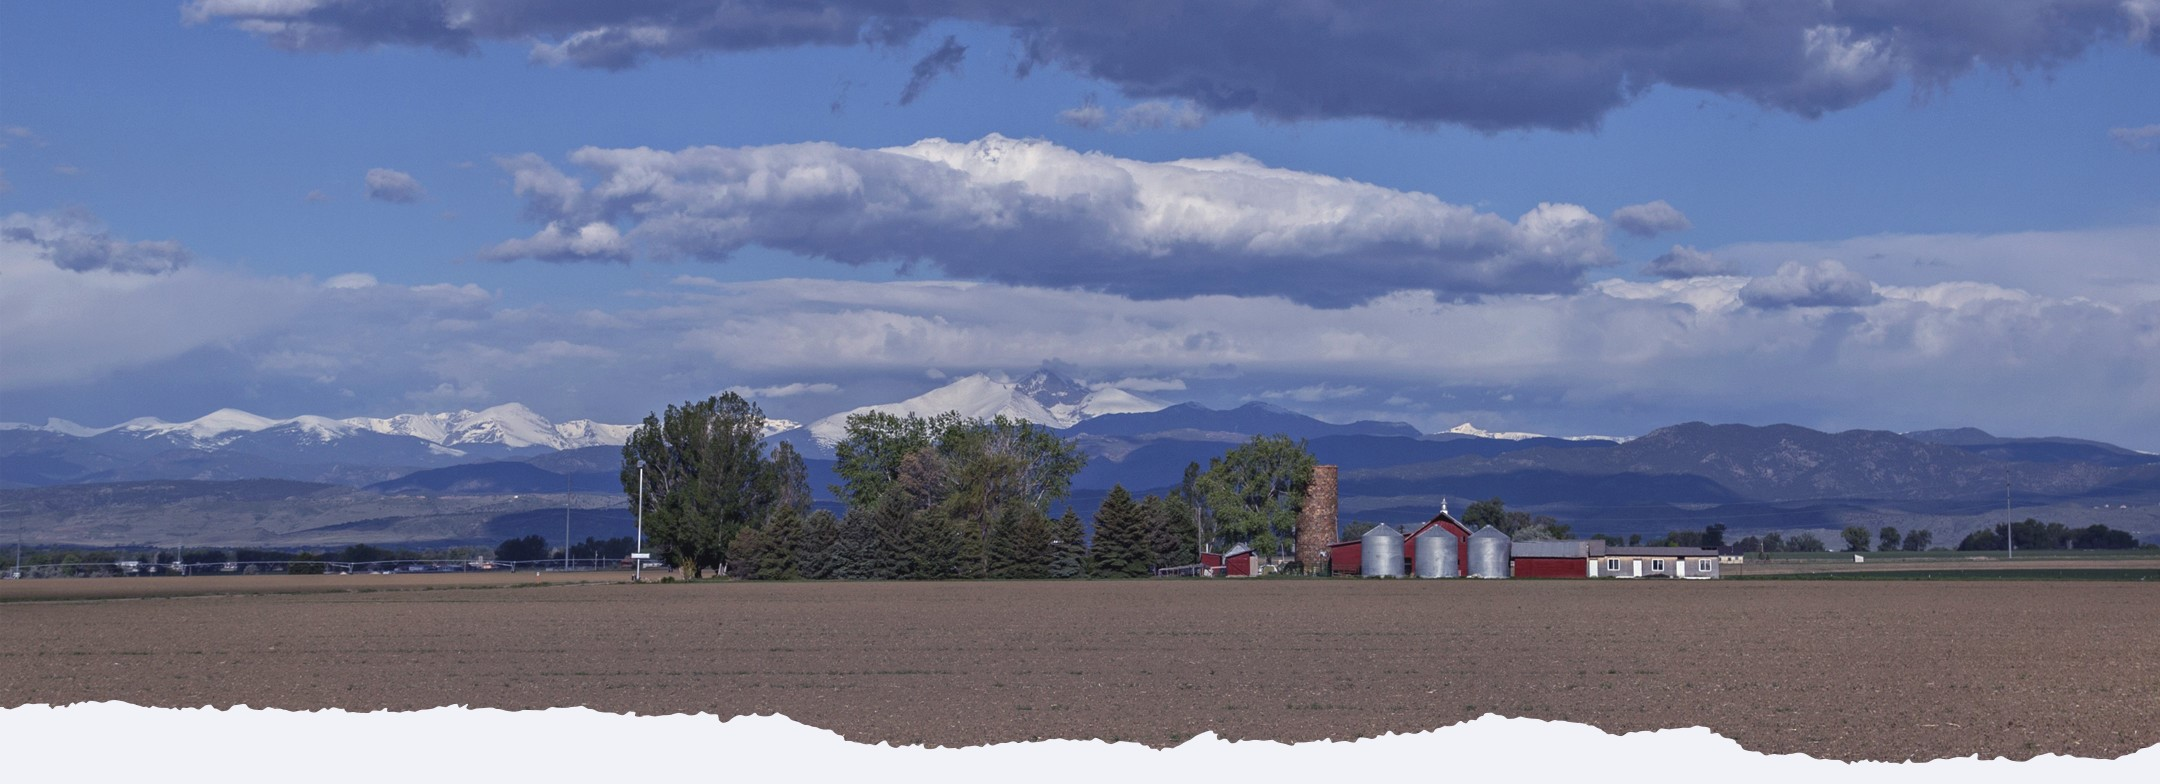 Red Barn with Silos and Large Trees with the Colorado Front Range Mountains Behind the Farm